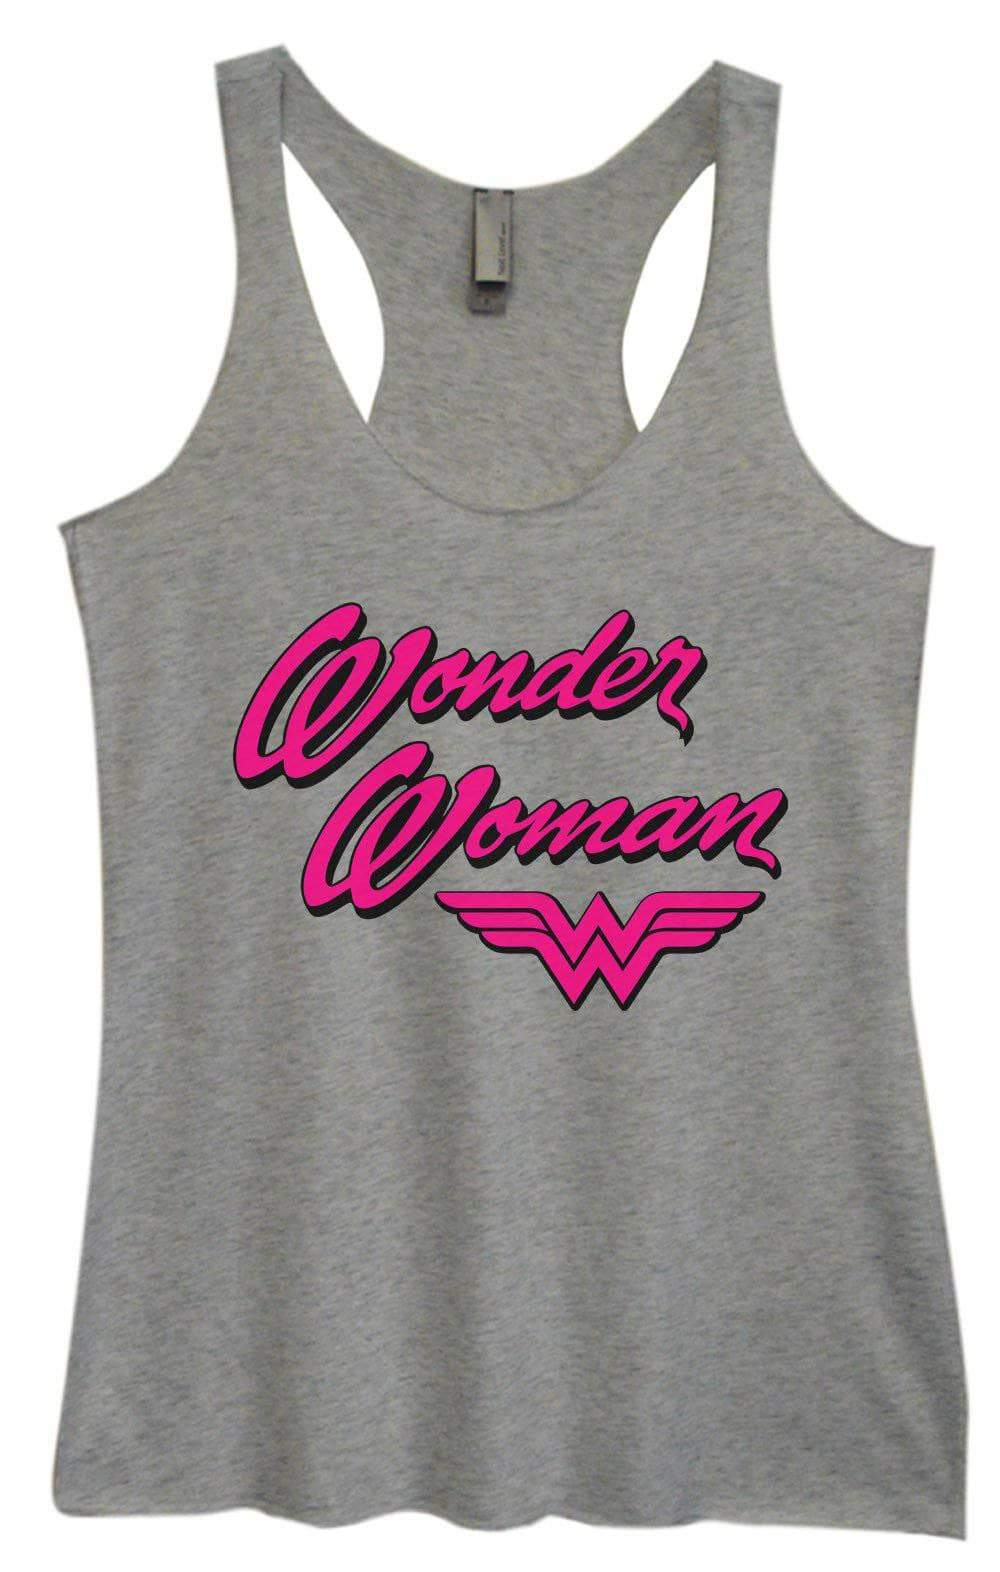 Womens Tri-Blend Tank Top - Wonder Woman Small Womens Tank Tops Vintage Grey